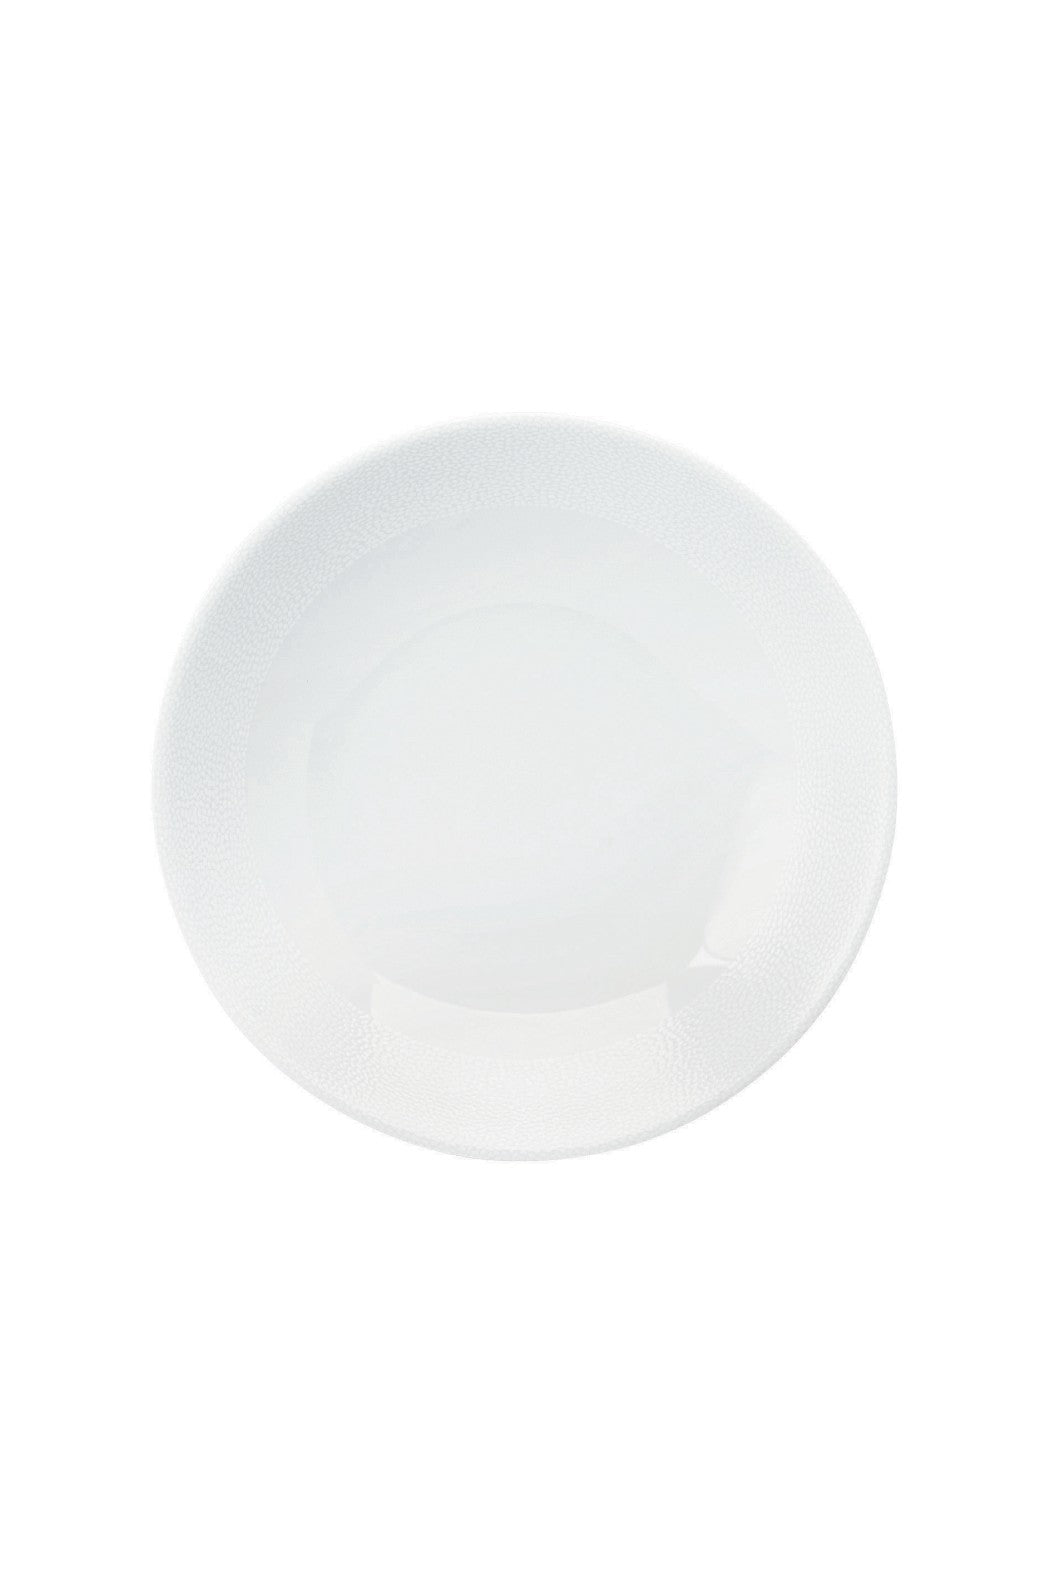 Deshoulieres Seychelles White Cereal Bowl Monica & David